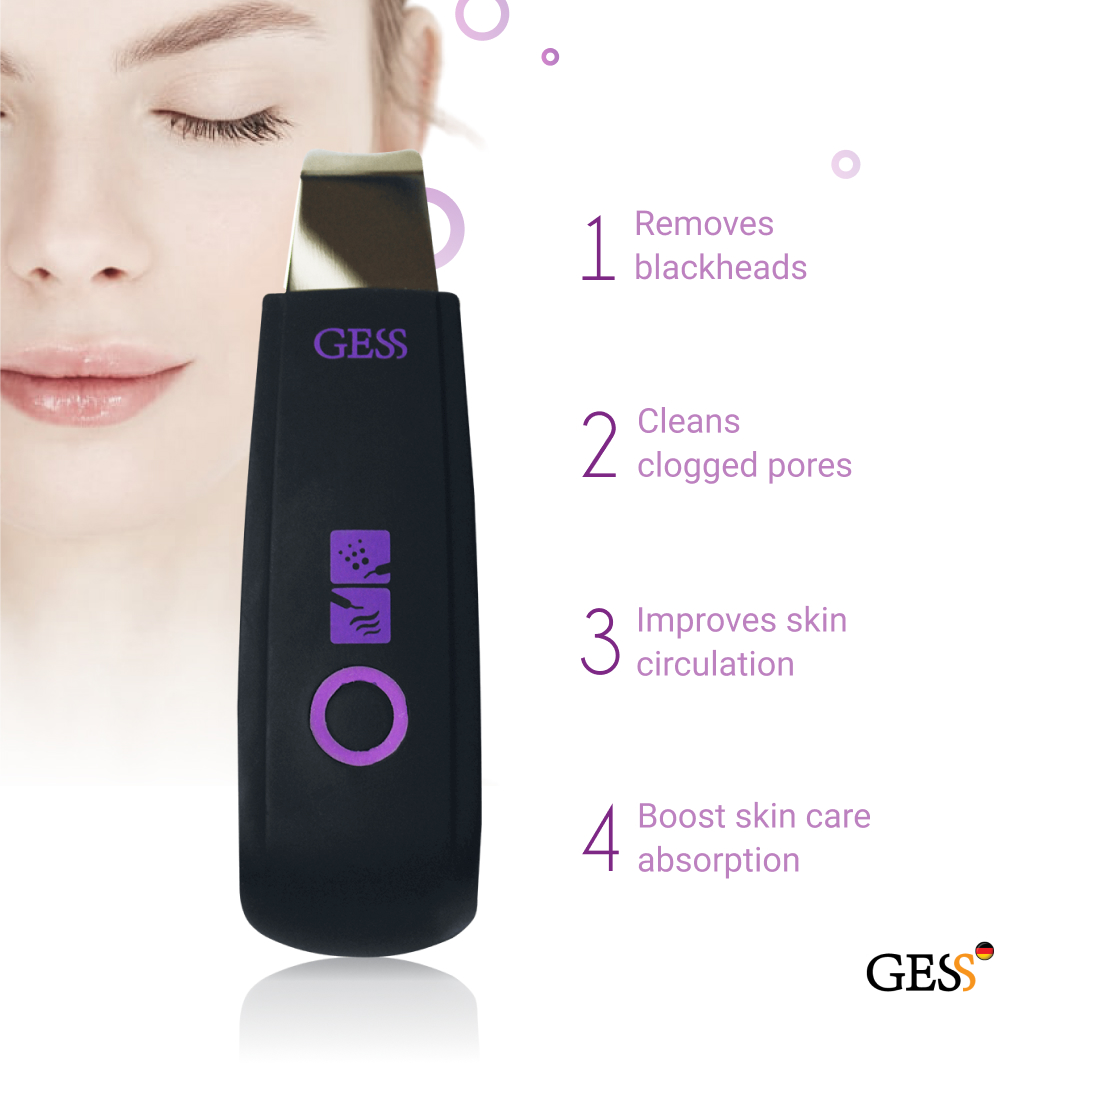 Ultrasound facial cleansing device